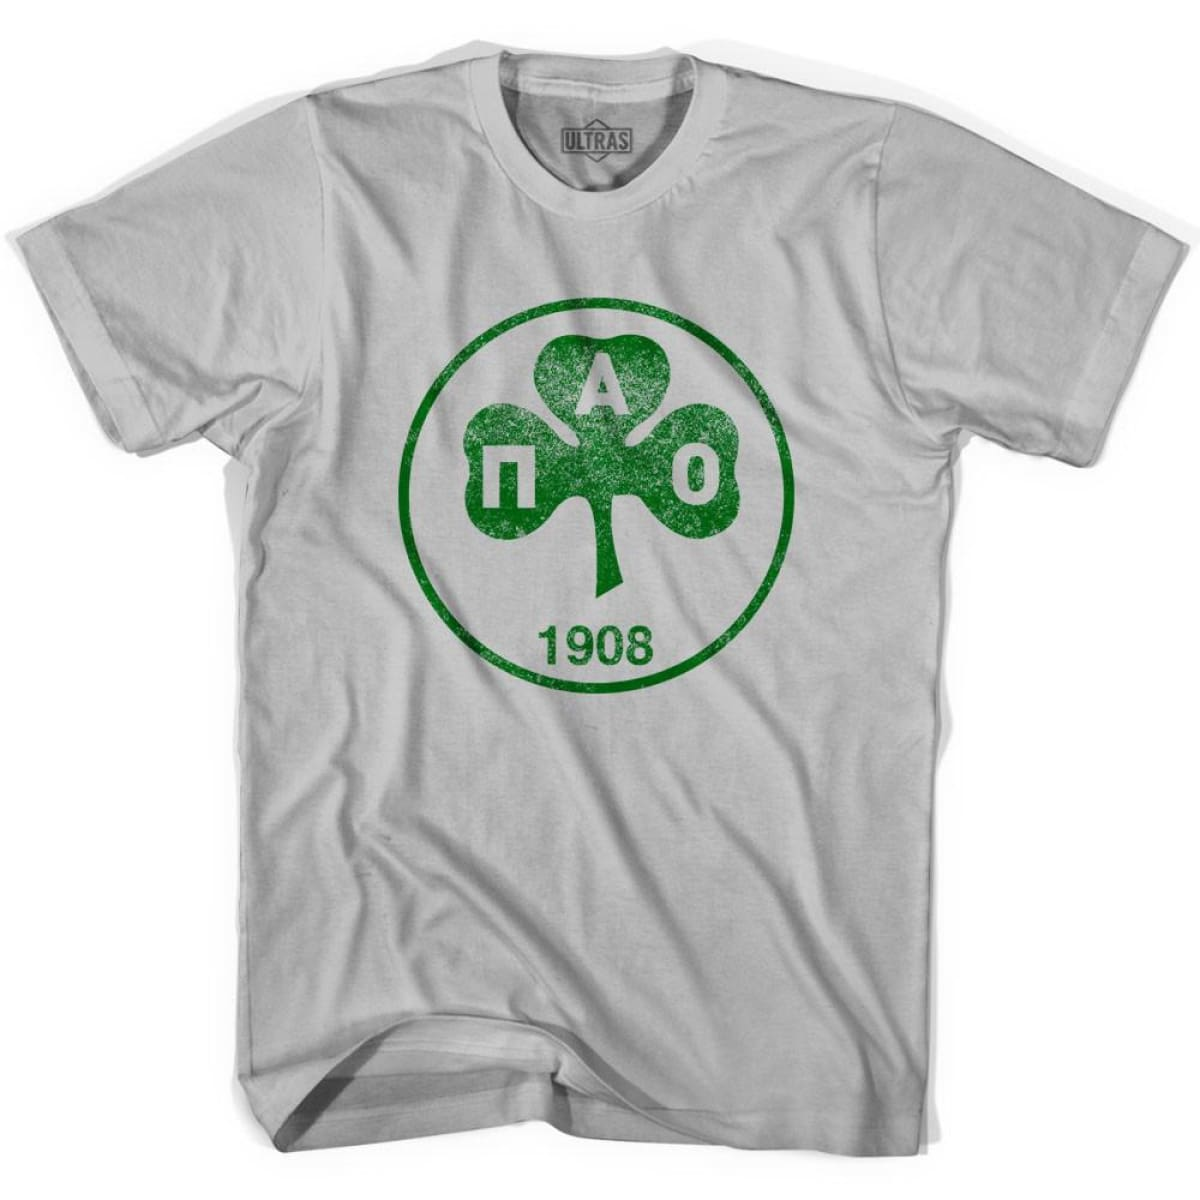 Ultras Vintage Panathinaikos Crest Ultras Soccer T-shirt - Cool Grey / Adult Small - Ultras Club Soccer T-shirt